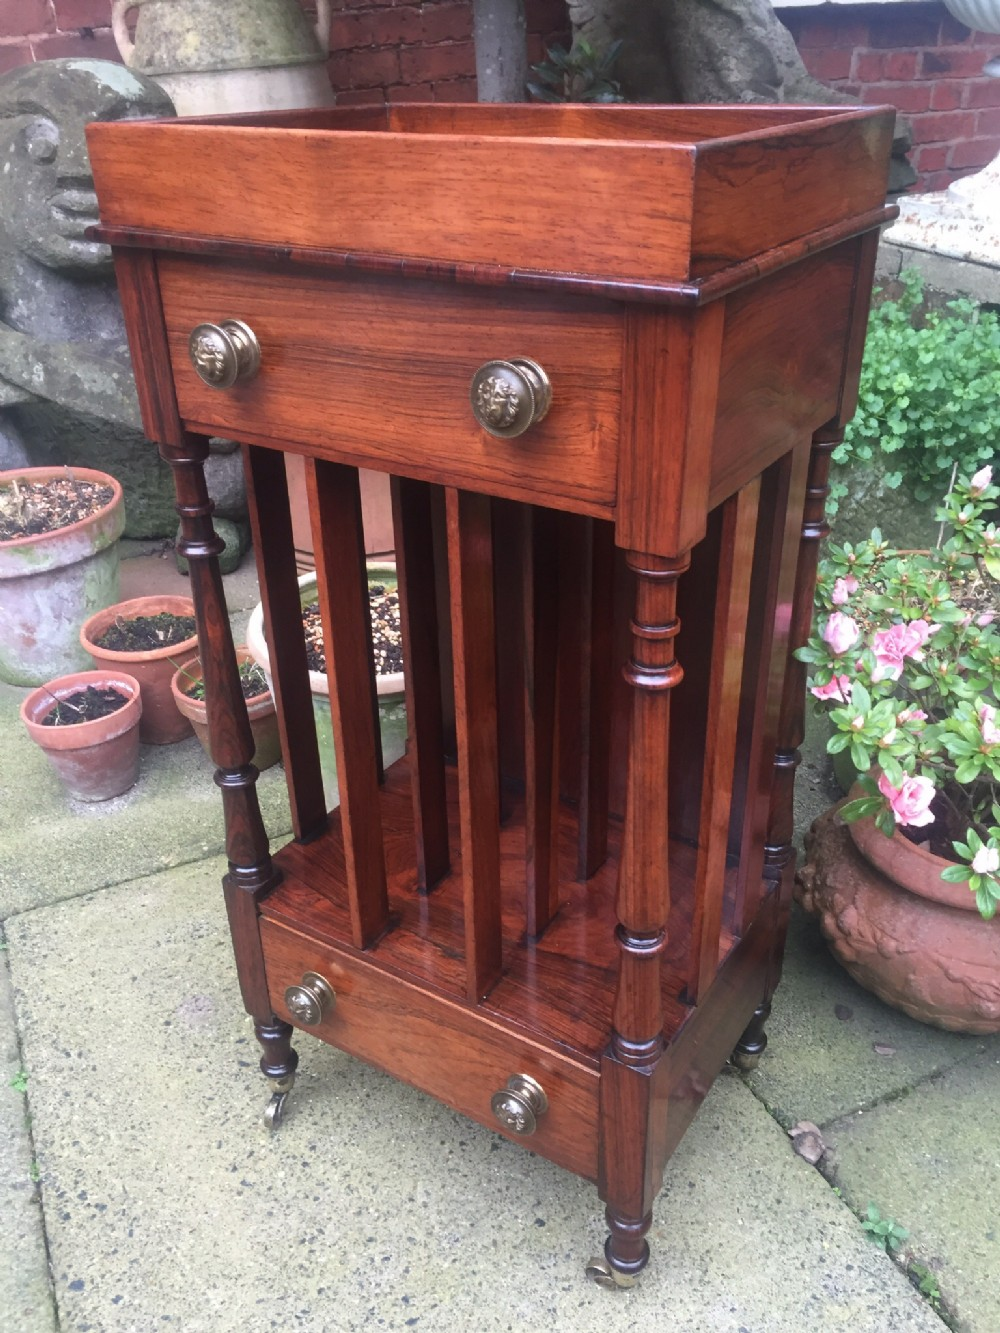 early c19th regency period rosewood etagere bookcasecanterburyfoliostand of unusual form